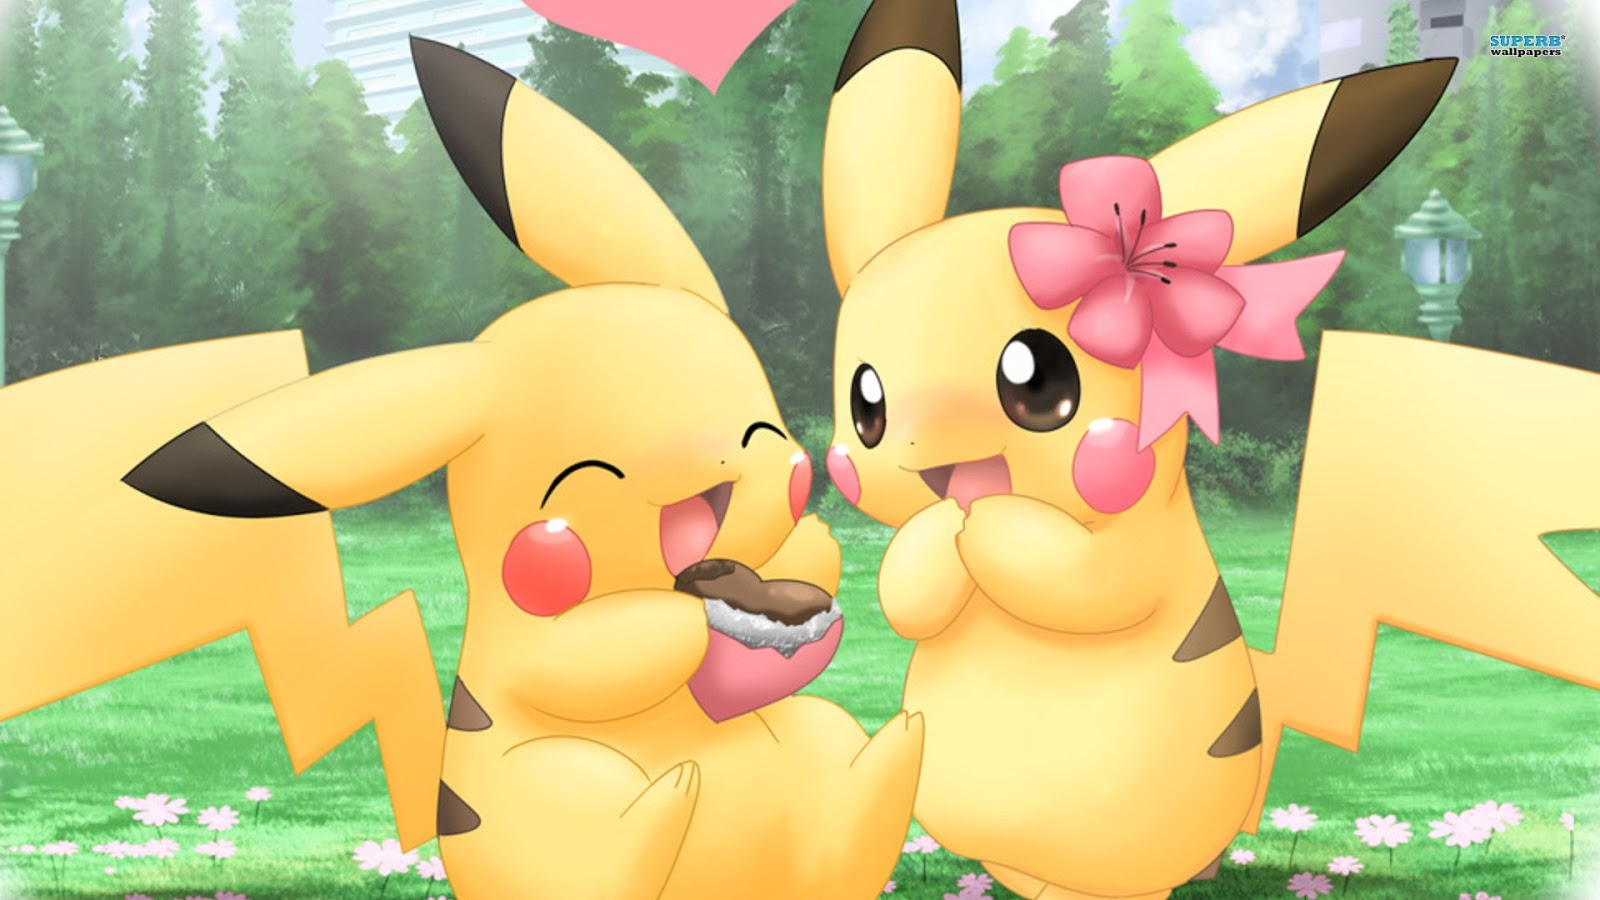 http://4.bp.blogspot.com/-udp47r-YYF8/UW-Xdly8SJI/AAAAAAAAAog/Ldvgk71hZvg/s1600/Pikachu-Pokemon-Cute-Couples-HD-Wallpaper.jpg